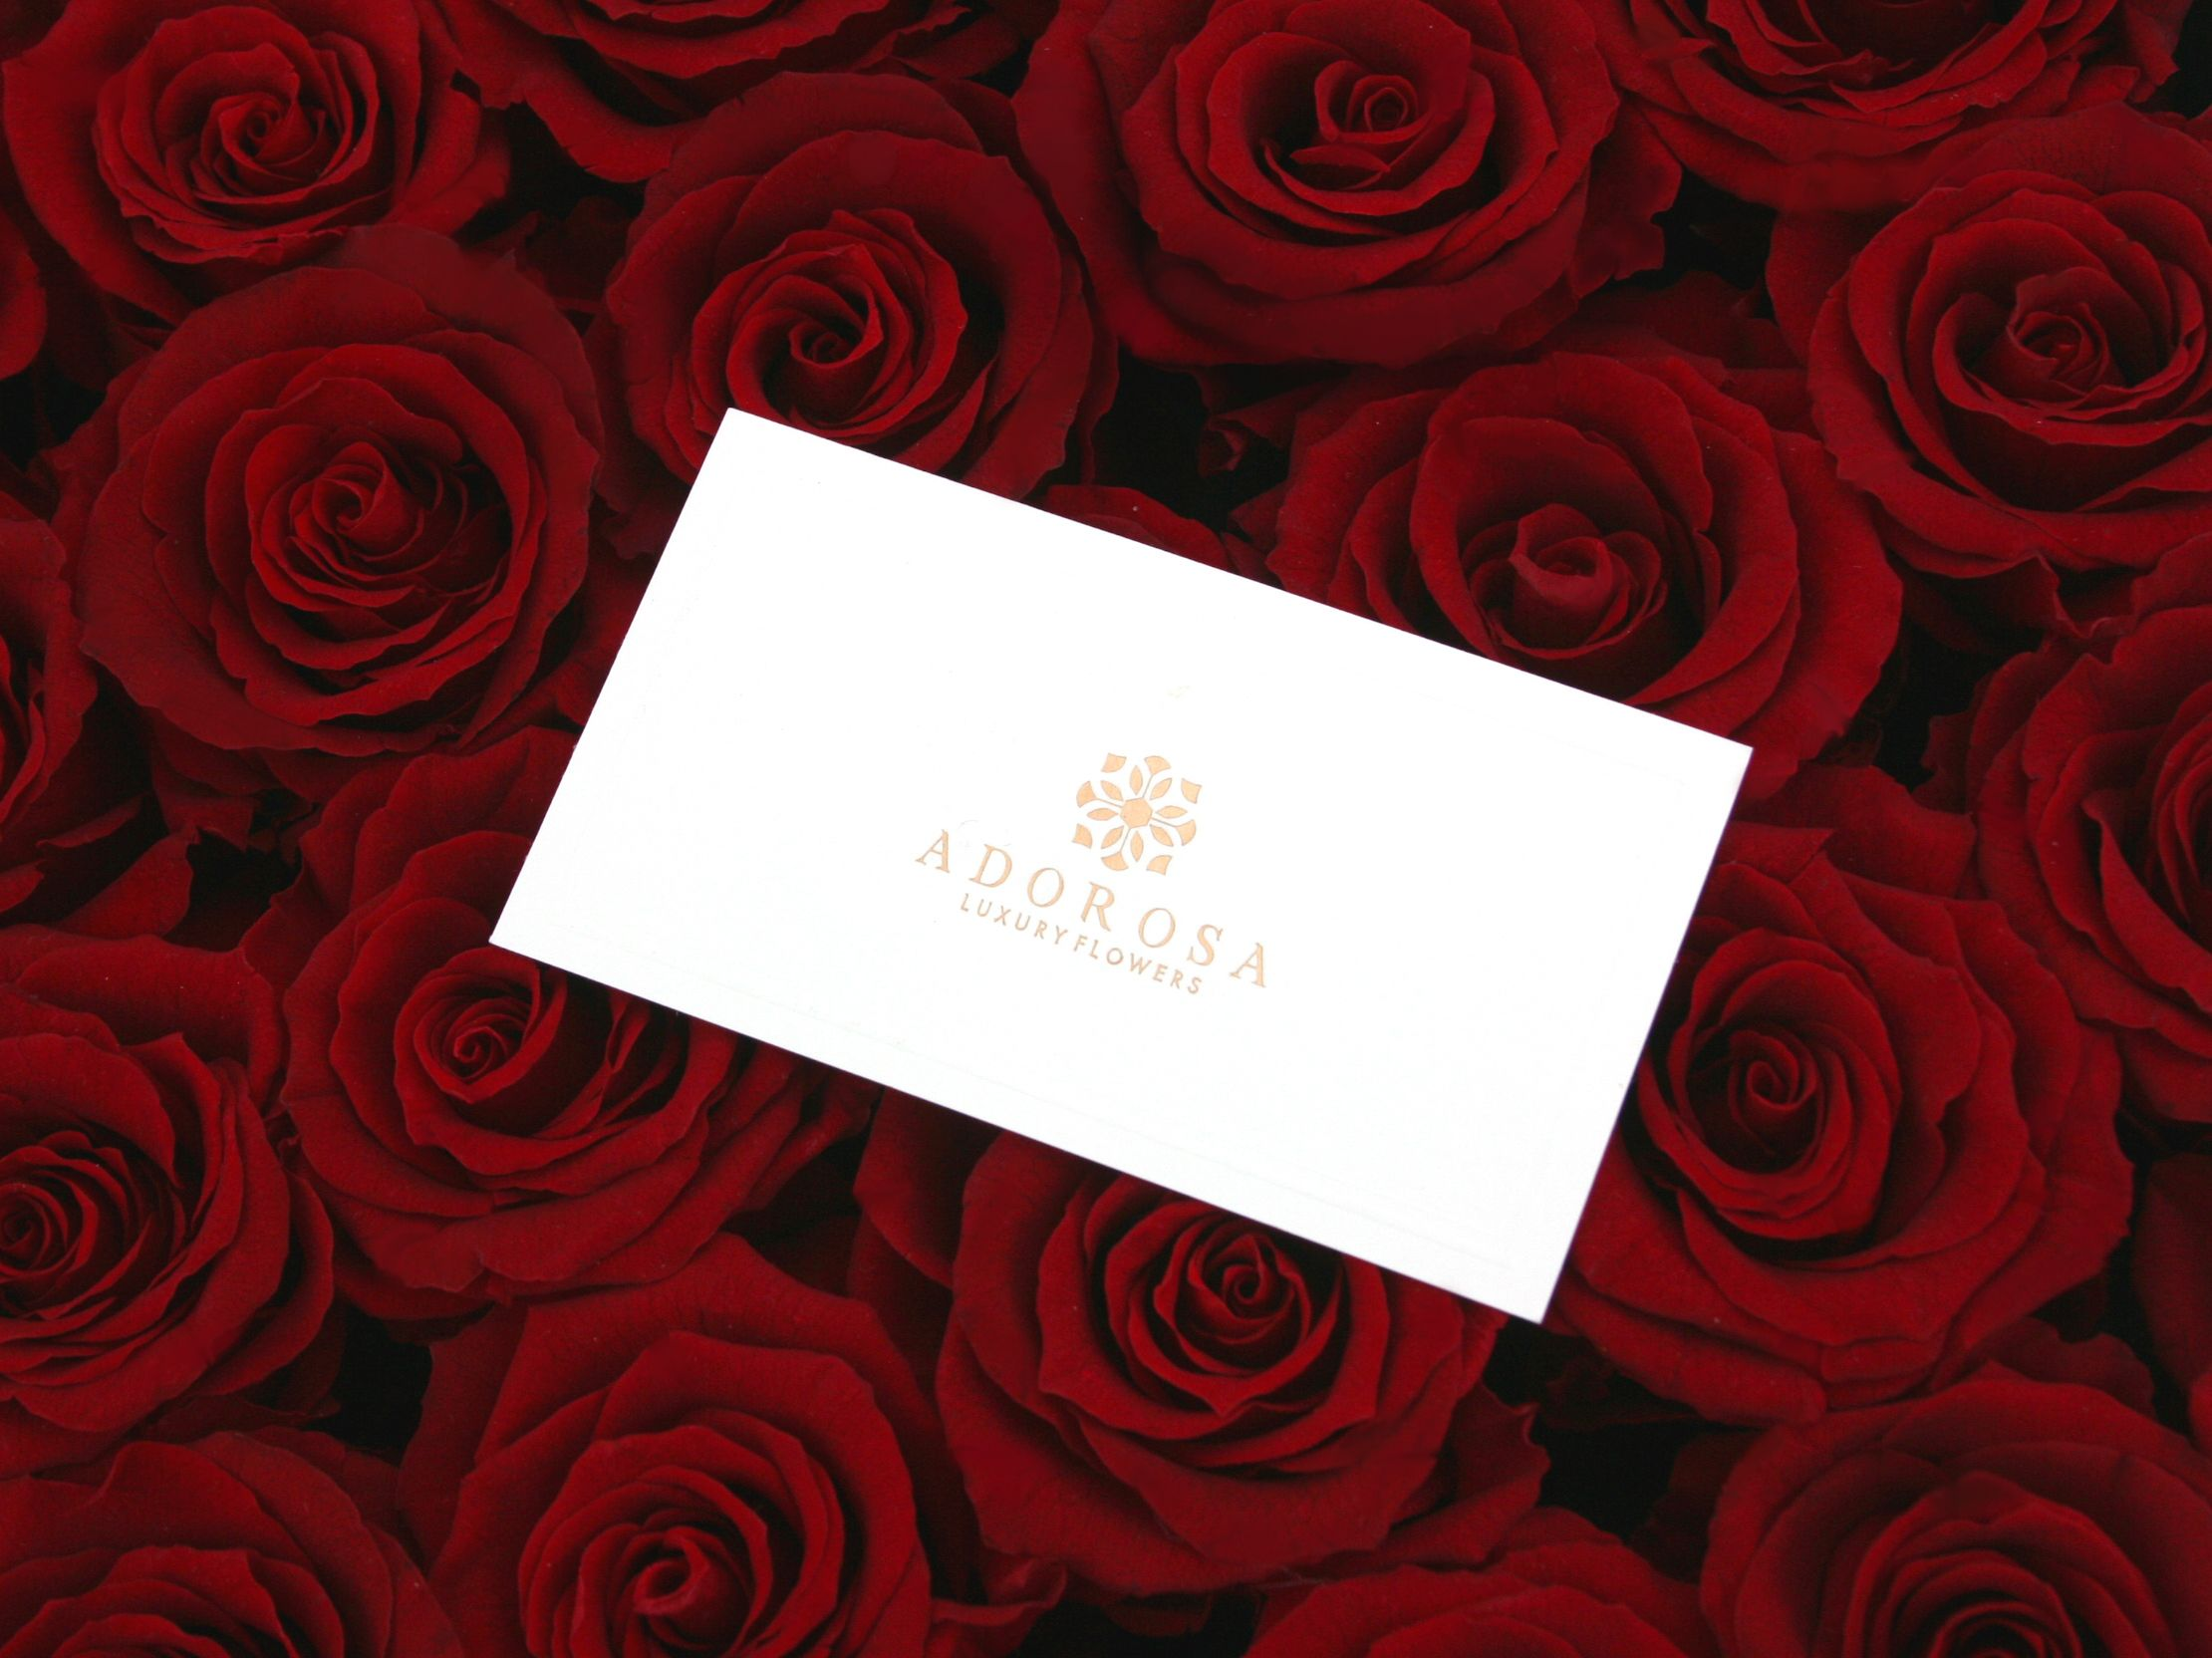 We Are A Luxury Flower Boutique Based In Sydney And We Specialise In The Finest Quality Preserved Flower Luxury Flowers How To Preserve Flowers Flower Boutique